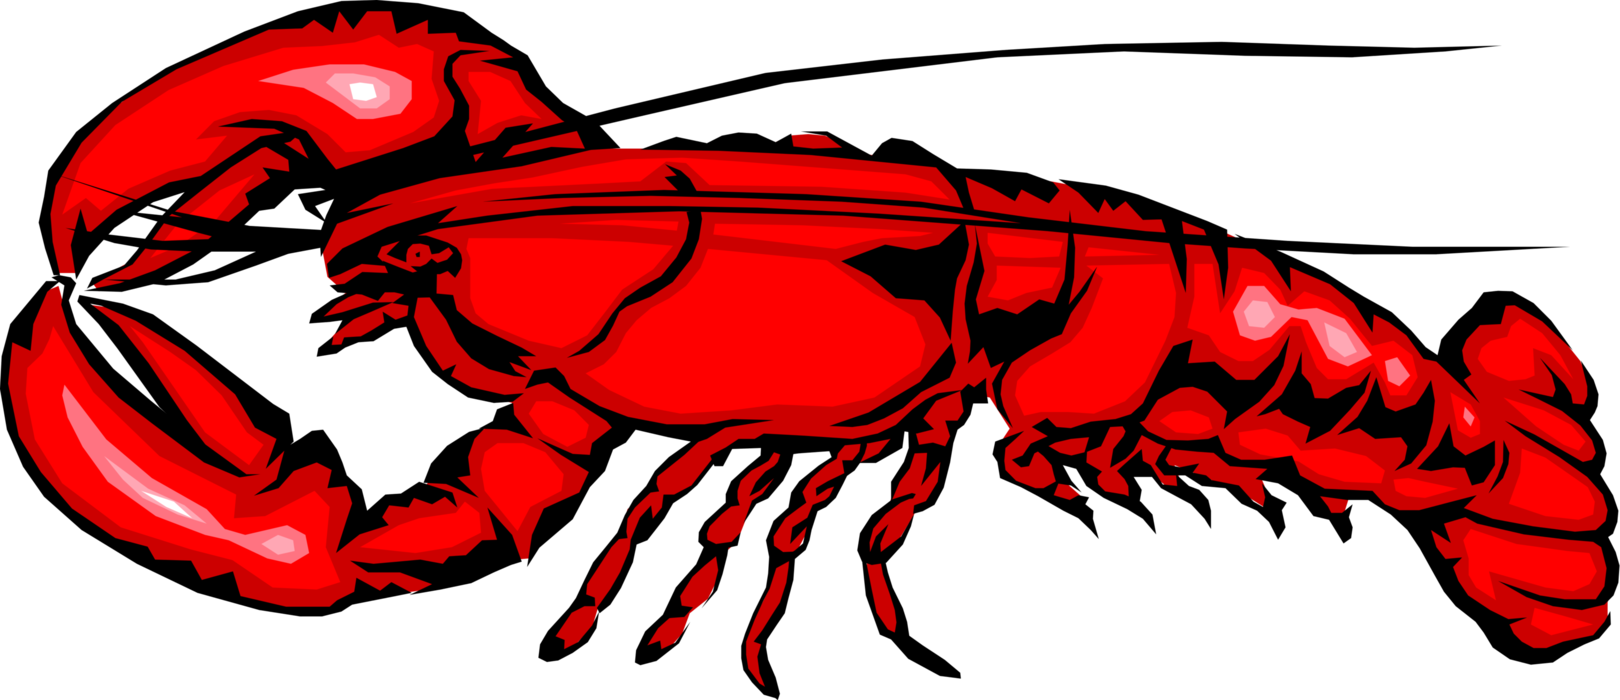 Vector Illustration of Clawed Lobster Shellfish Marine Crustacean Seafood